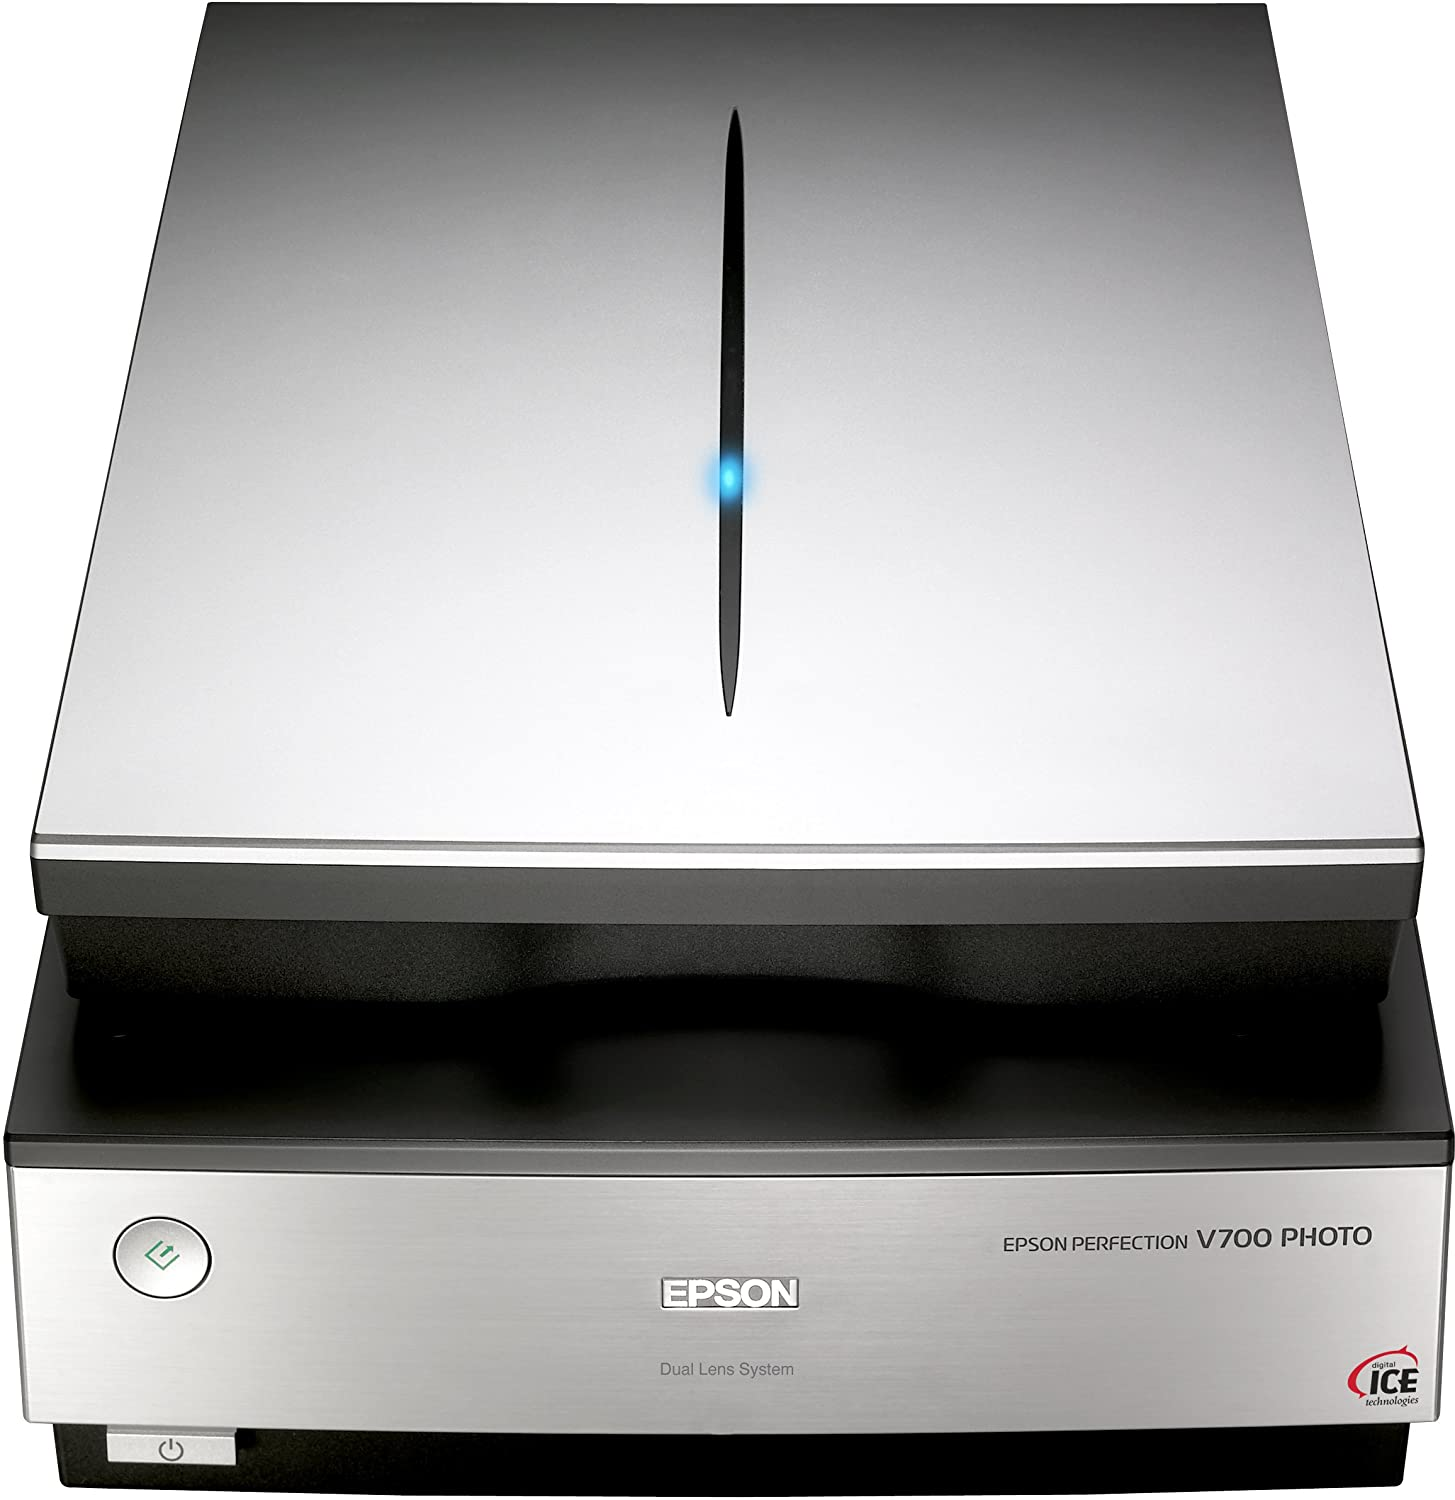 Epson Perfection V700 Photo Scanner - Oberklasse